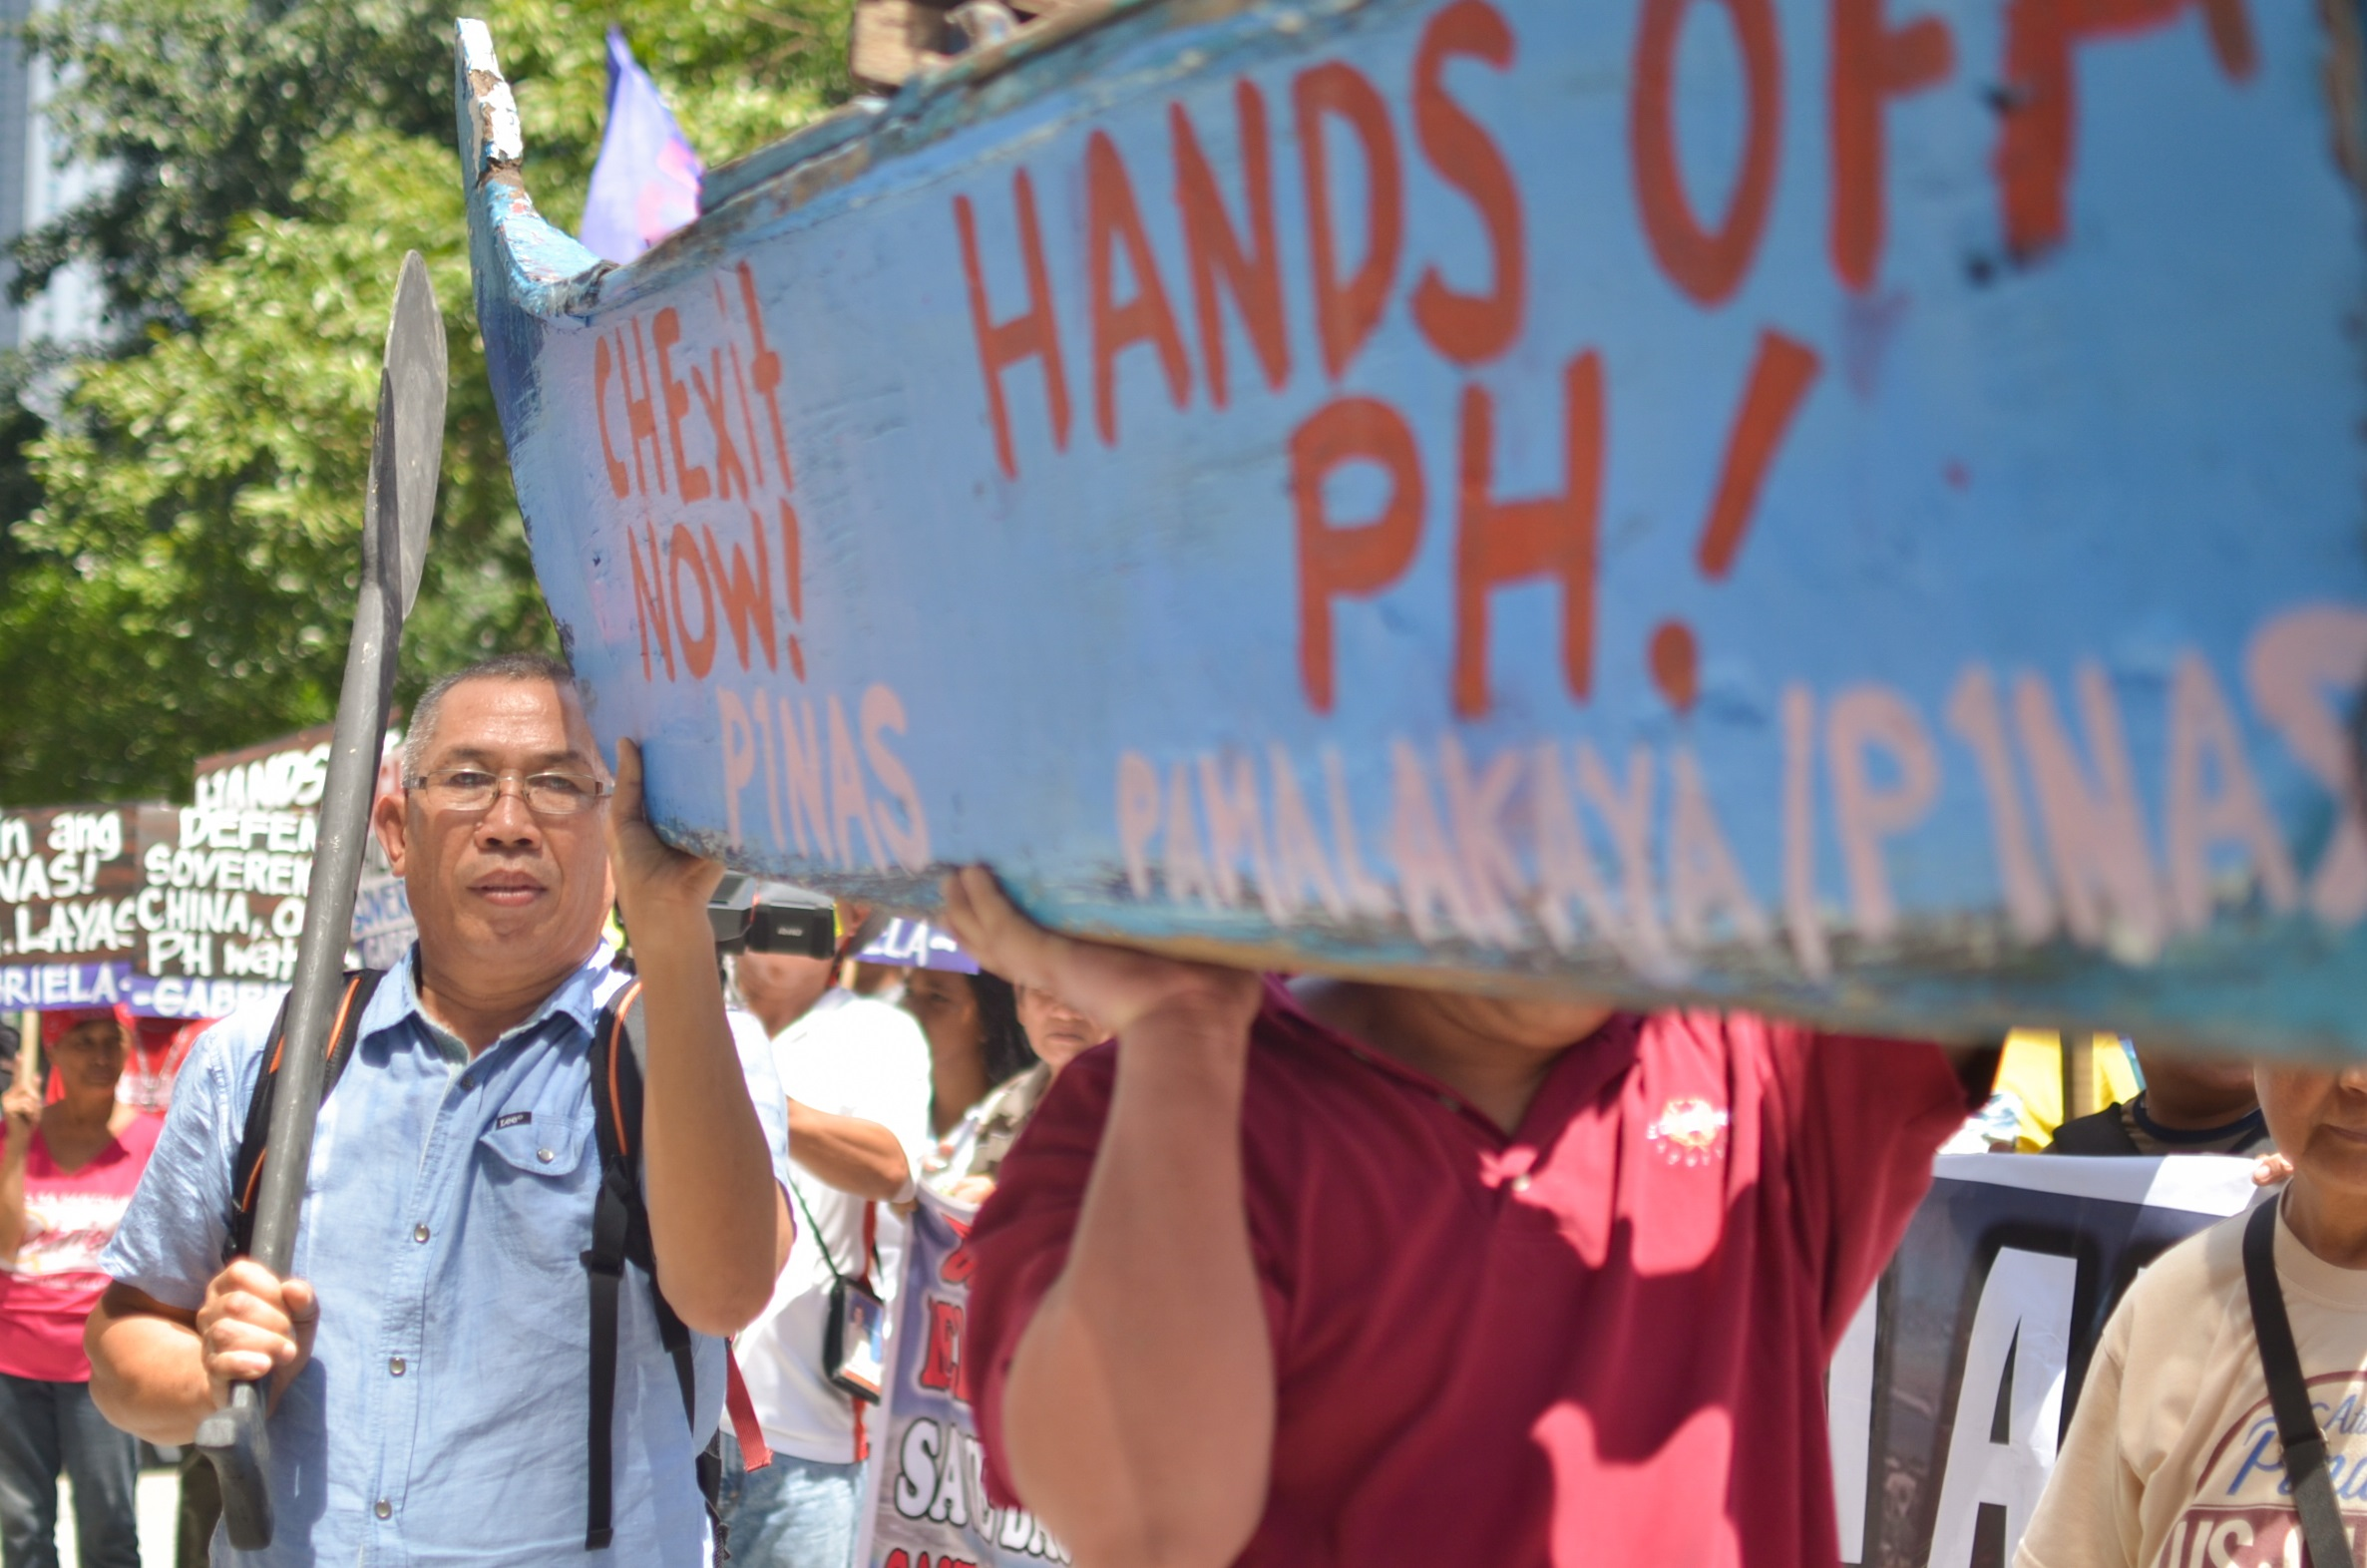 BULATLAT FILE PHOTO. Pamalakaya vice chairperson Salvador France carries a symbolic boat along with other fisherfolk at the July 12 protest in front of the Chinese Consulate in Makati City (Photo by Carlo Manalansan/Bulatlat)